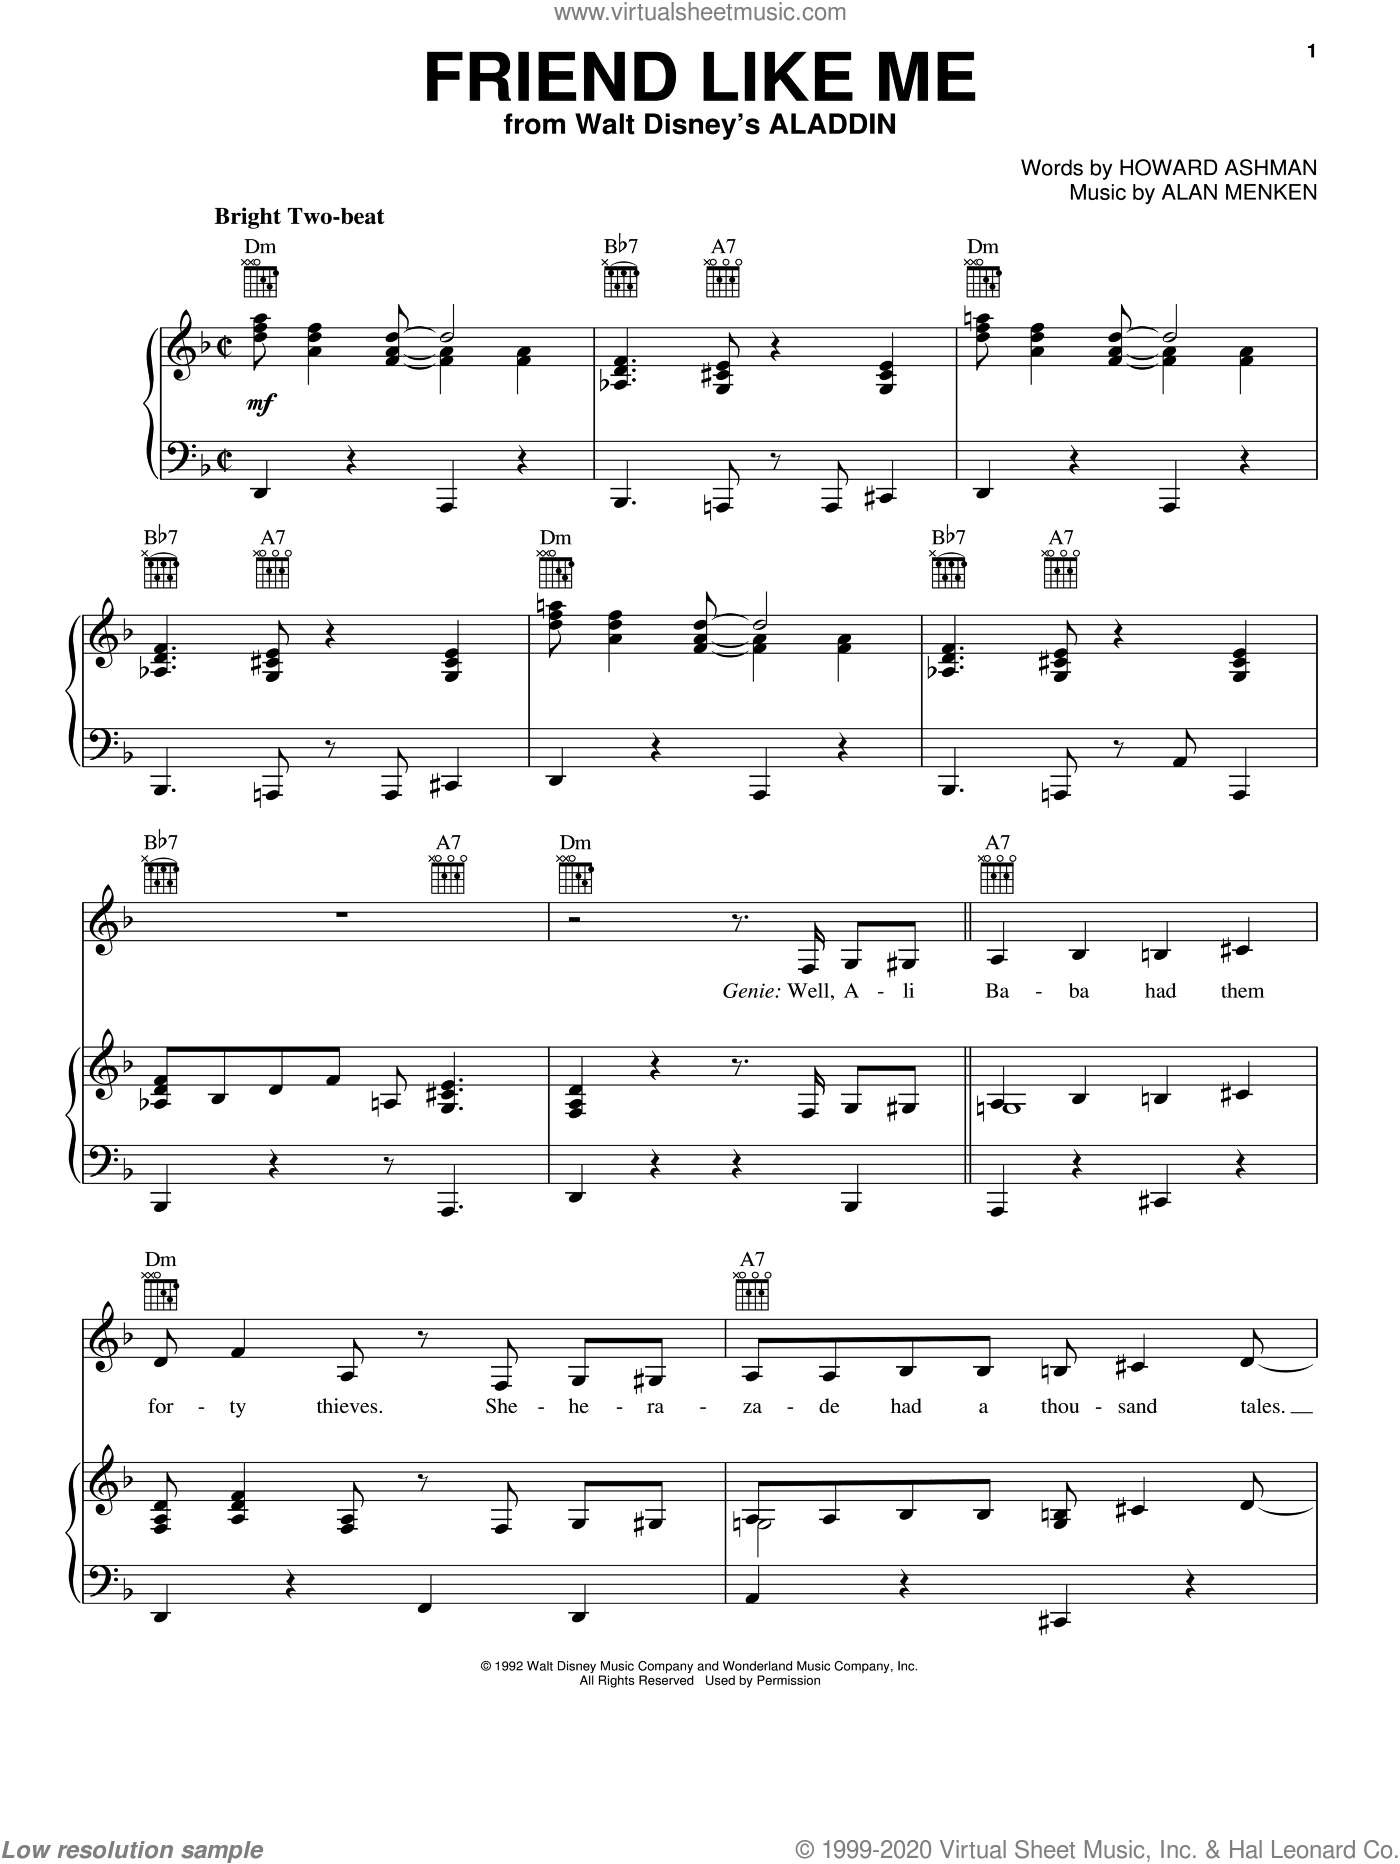 Friend Like Me sheet music for voice, piano or guitar by Alan Menken and Howard Ashman, intermediate skill level